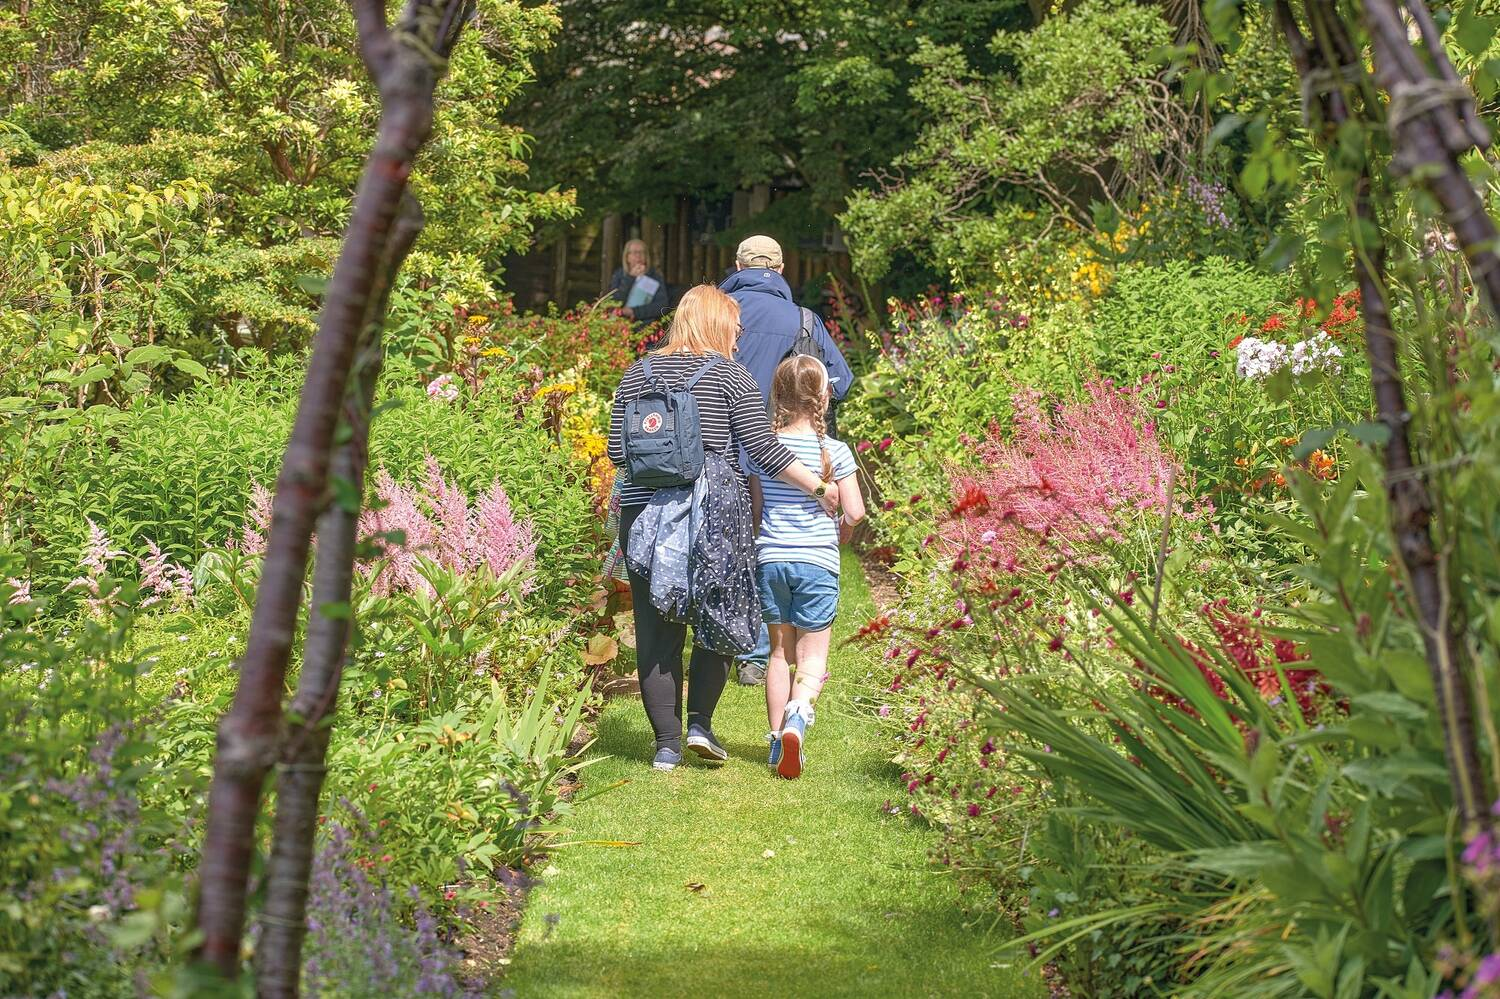 A mum walks away from the camera, with her arm around her young daughter's back, along a grass path in a pretty garden. A man walks just ahead of them.